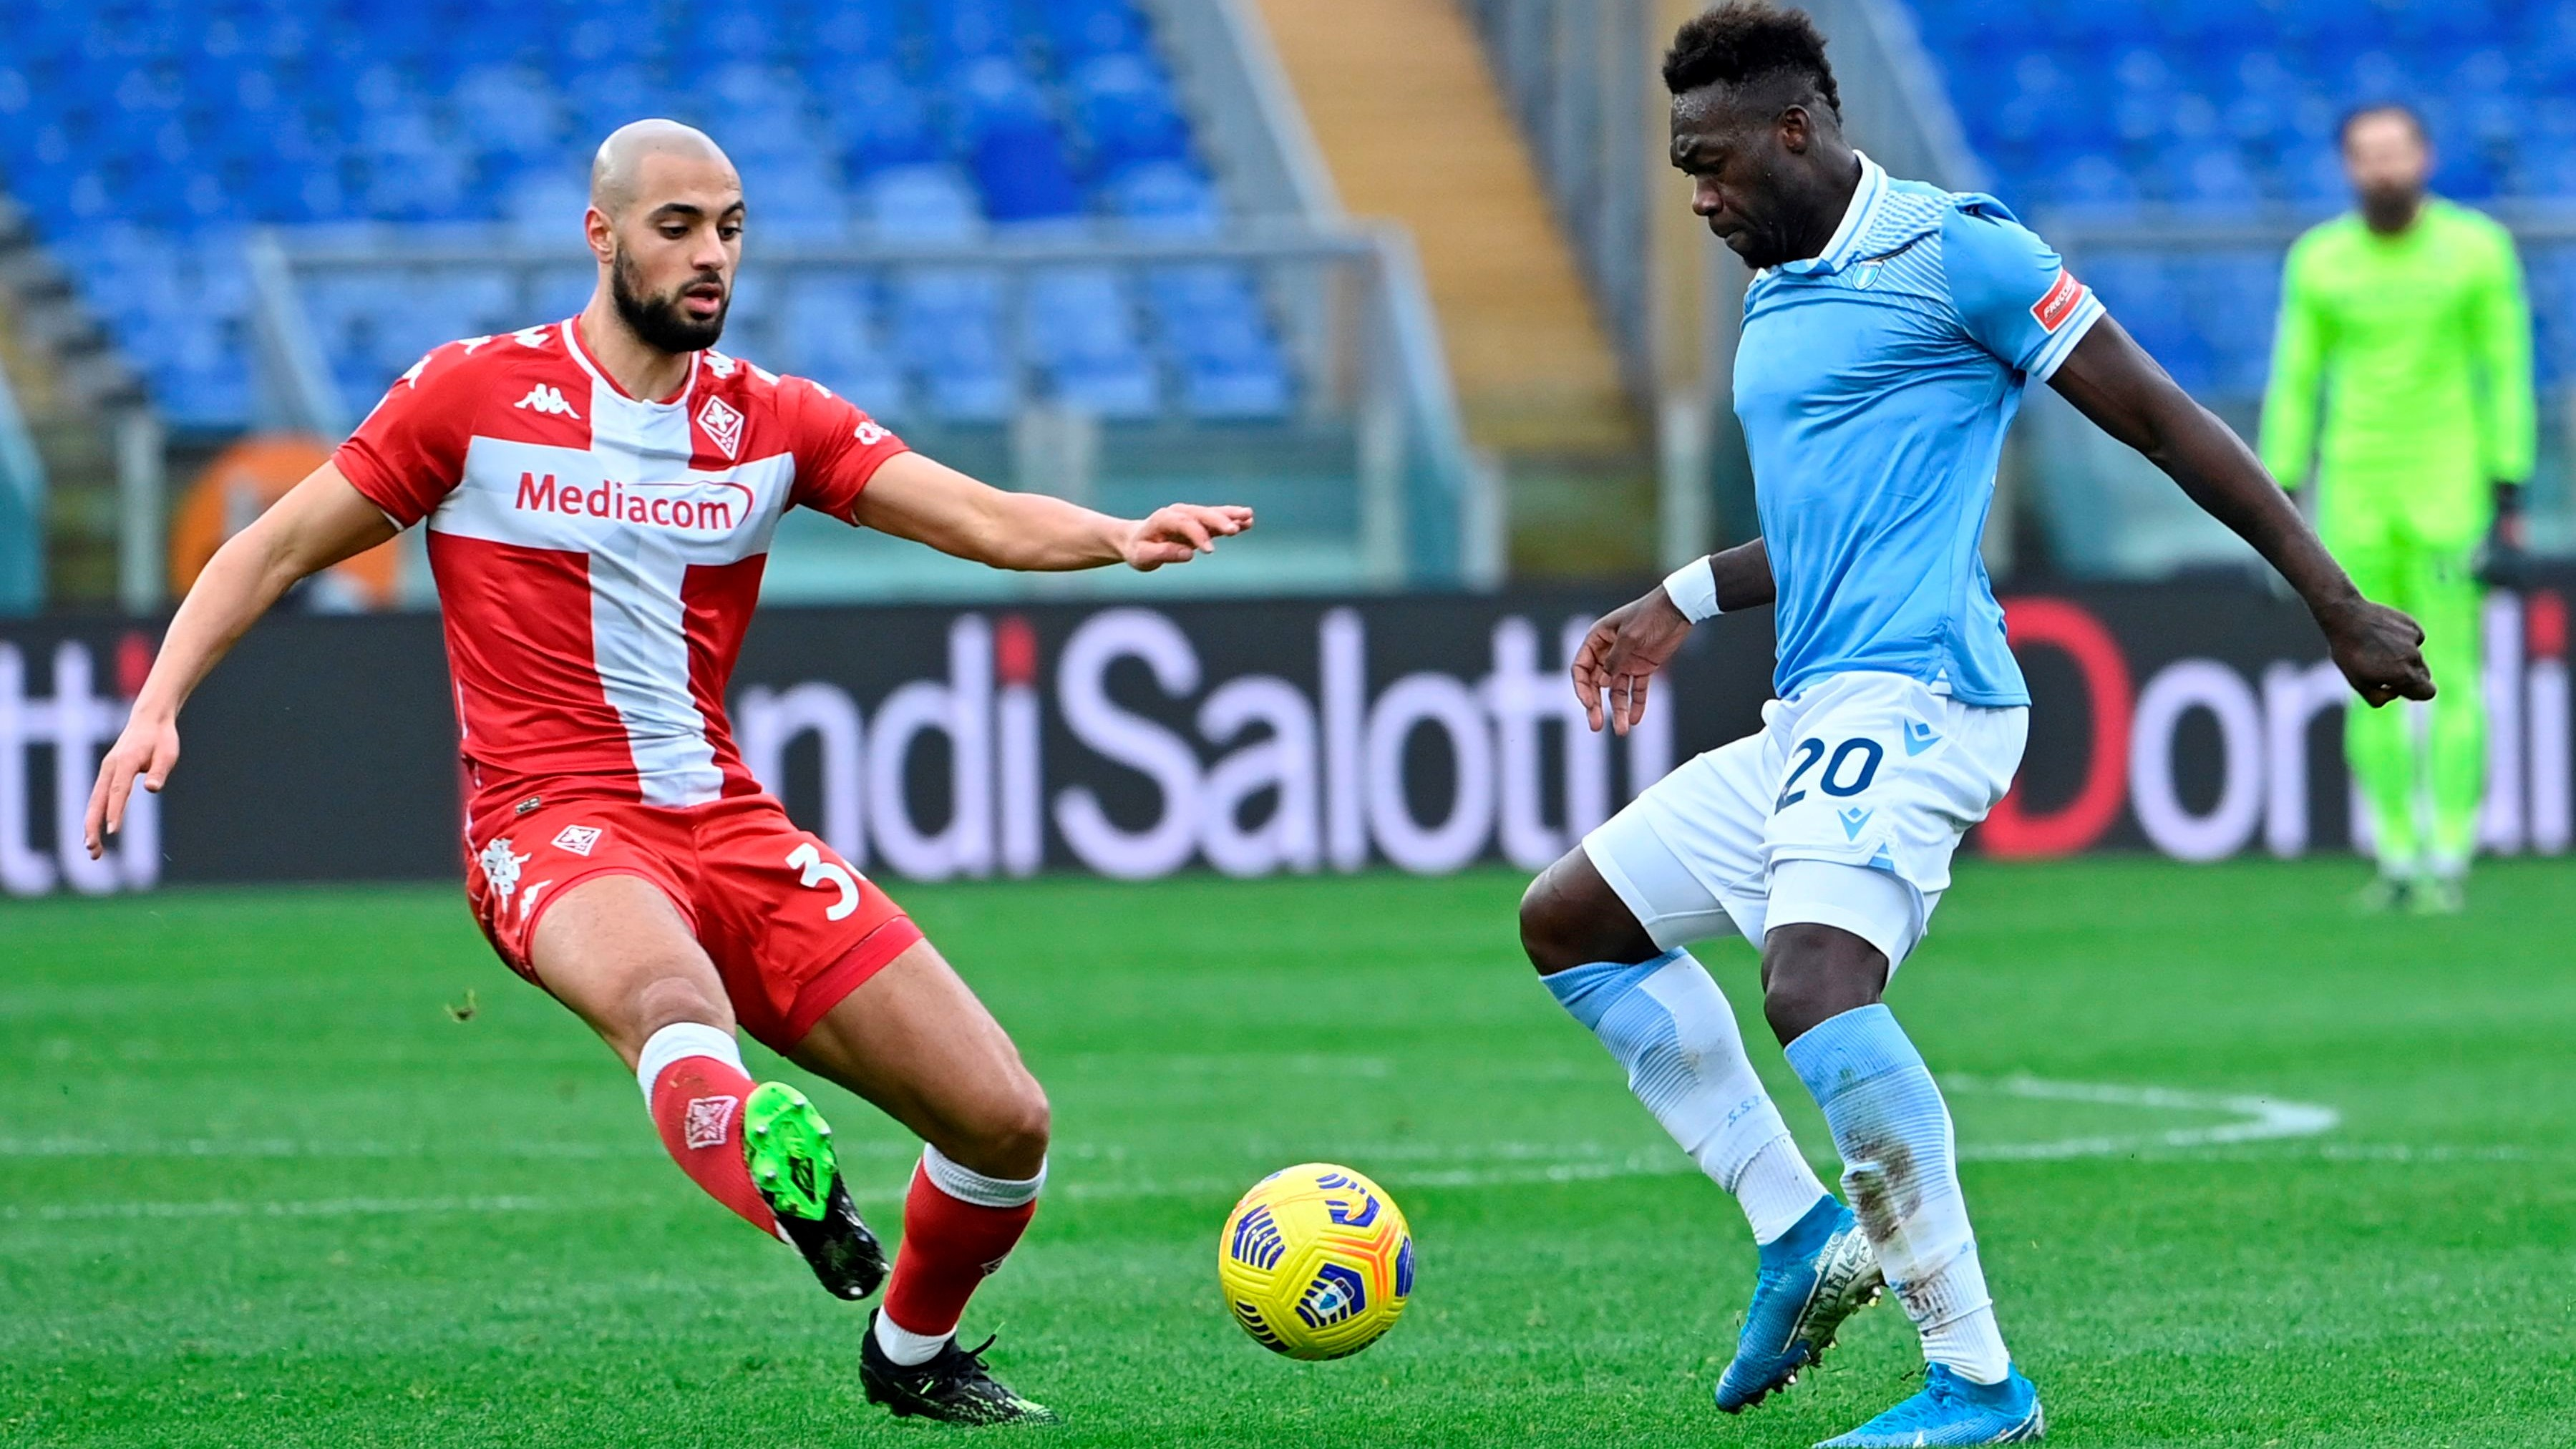 Watch Lazio v Fiorentina Live Stream | DAZN IT